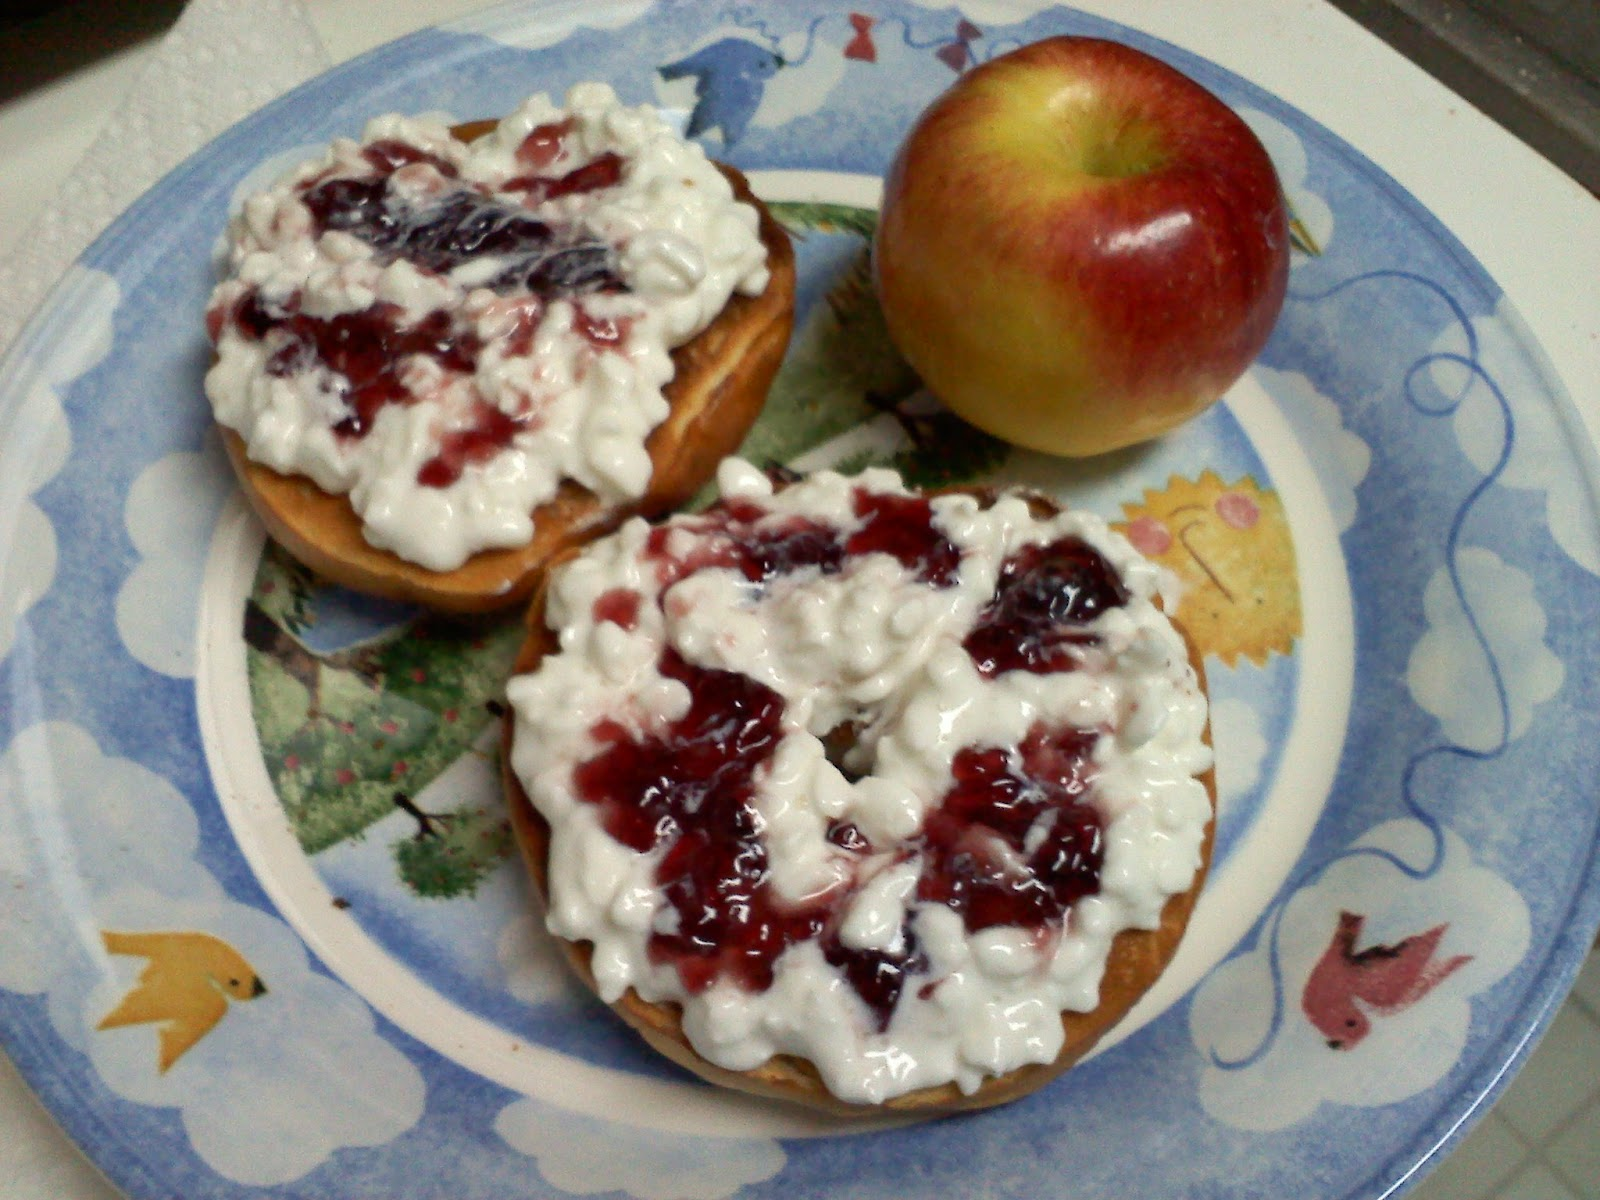 http://4.bp.blogspot.com/_CfpkJwizQx8/TSTO110DPuI/AAAAAAAAAGw/Fw7CSZ6yw1Q/s1600/cottage+cheese+with+jelly.jpg